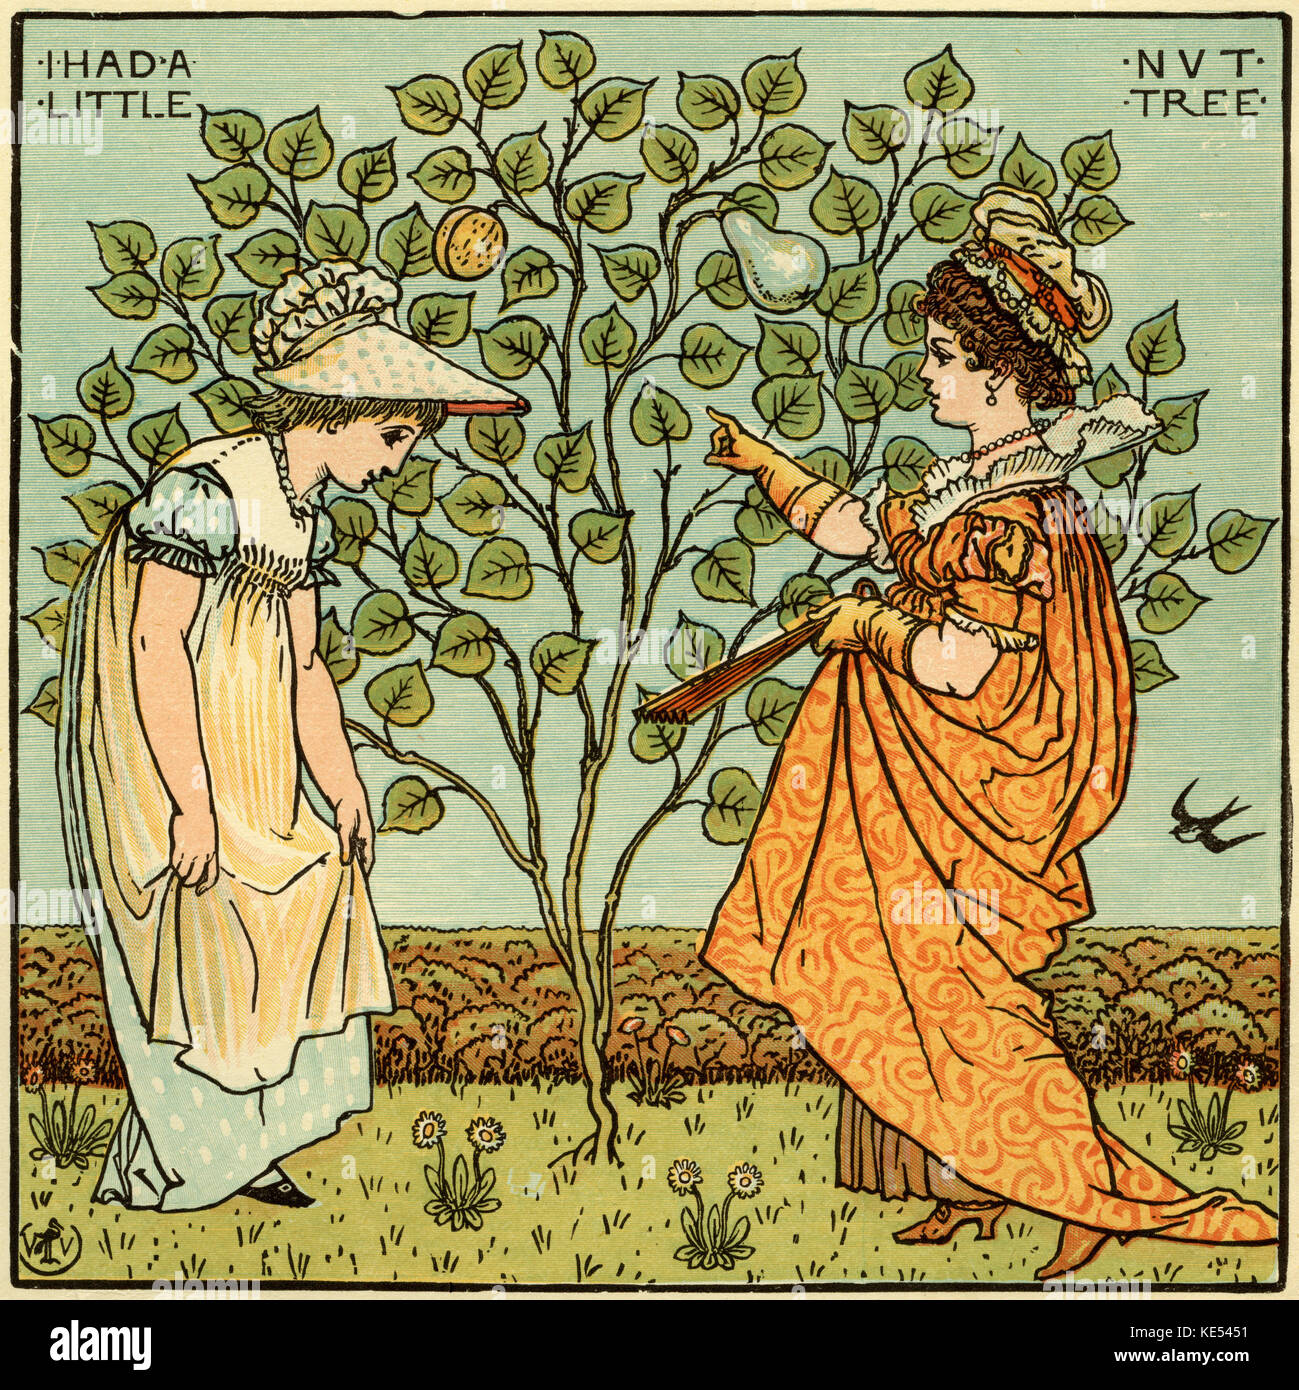 I had a little nut tree, nursery rhyme, illustration (1877) by Walter Crane. English artist of Arts and Crafts movement, - Stock Image